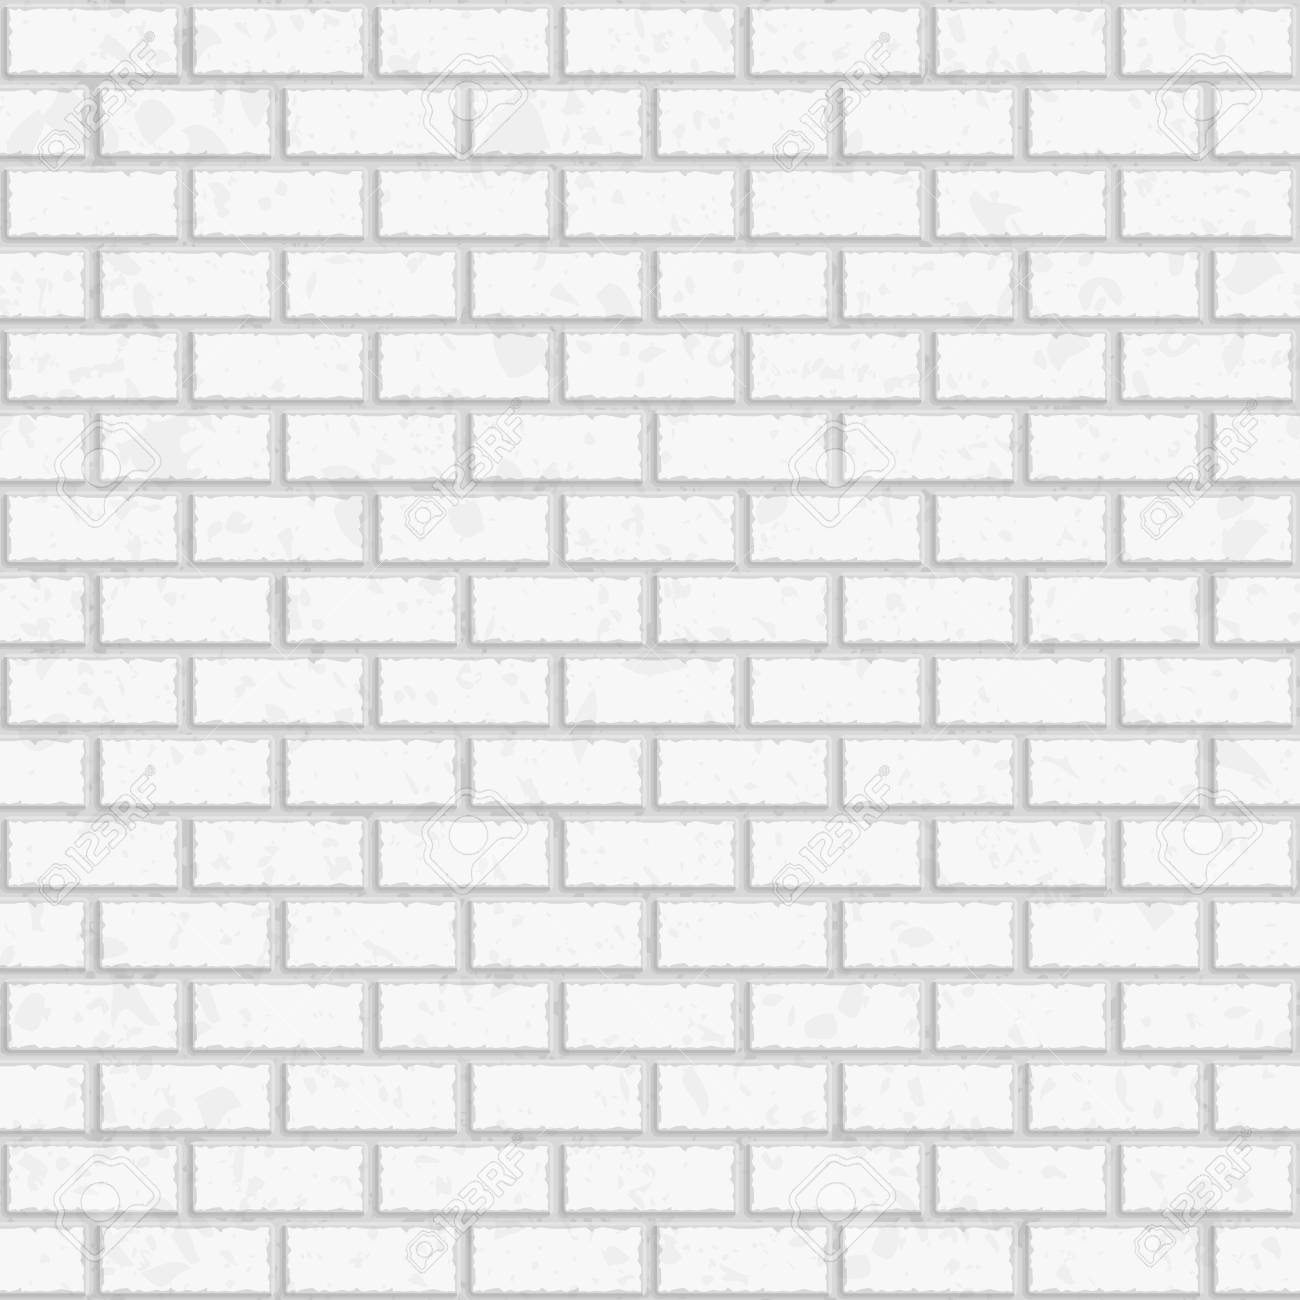 White Seamless Brick Wall Vector Seamless Texture Pattern Royalty Free Cliparts Vectors And Stock Illustration Image 61194756